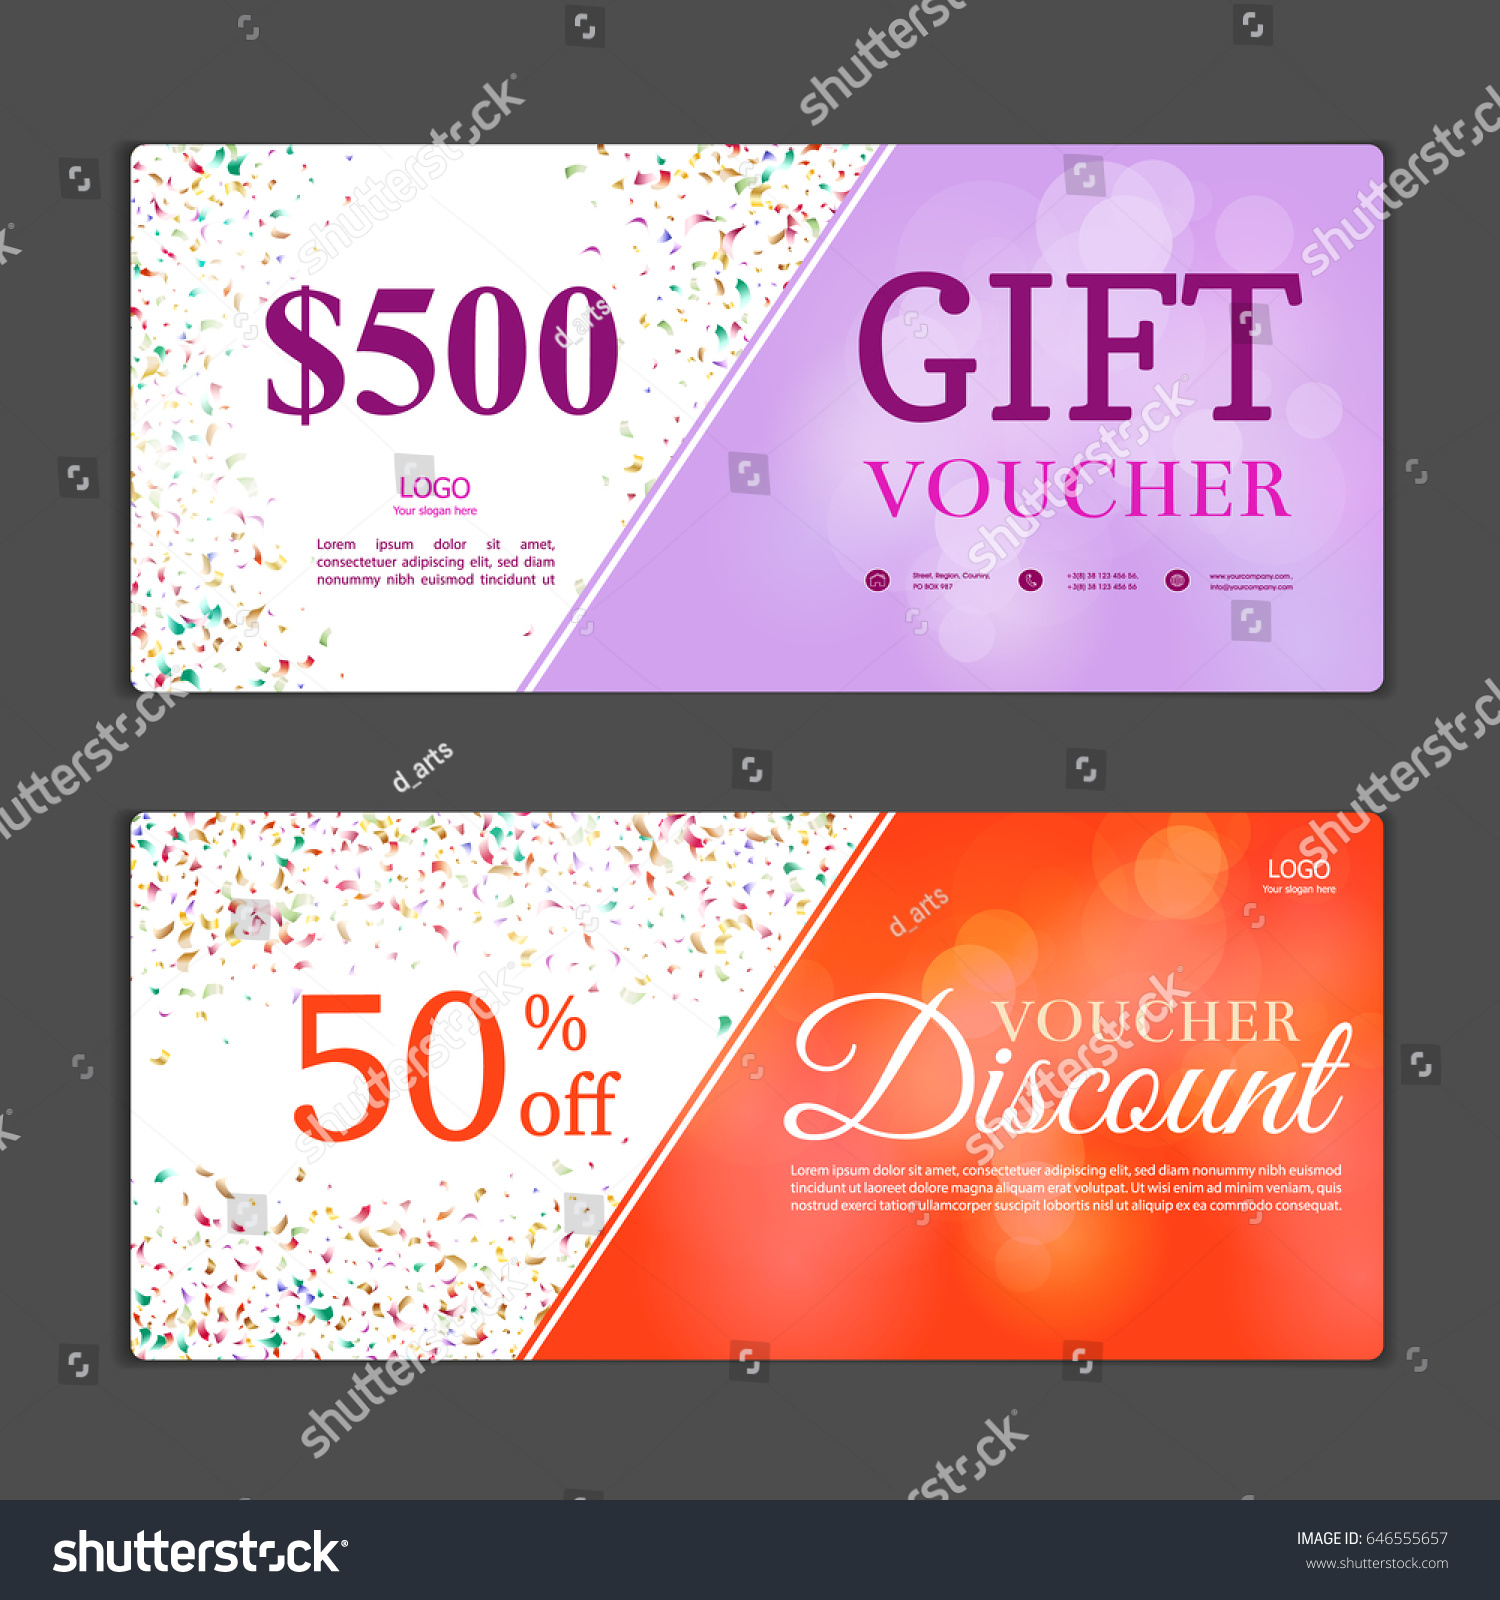 how to use asos gift voucher